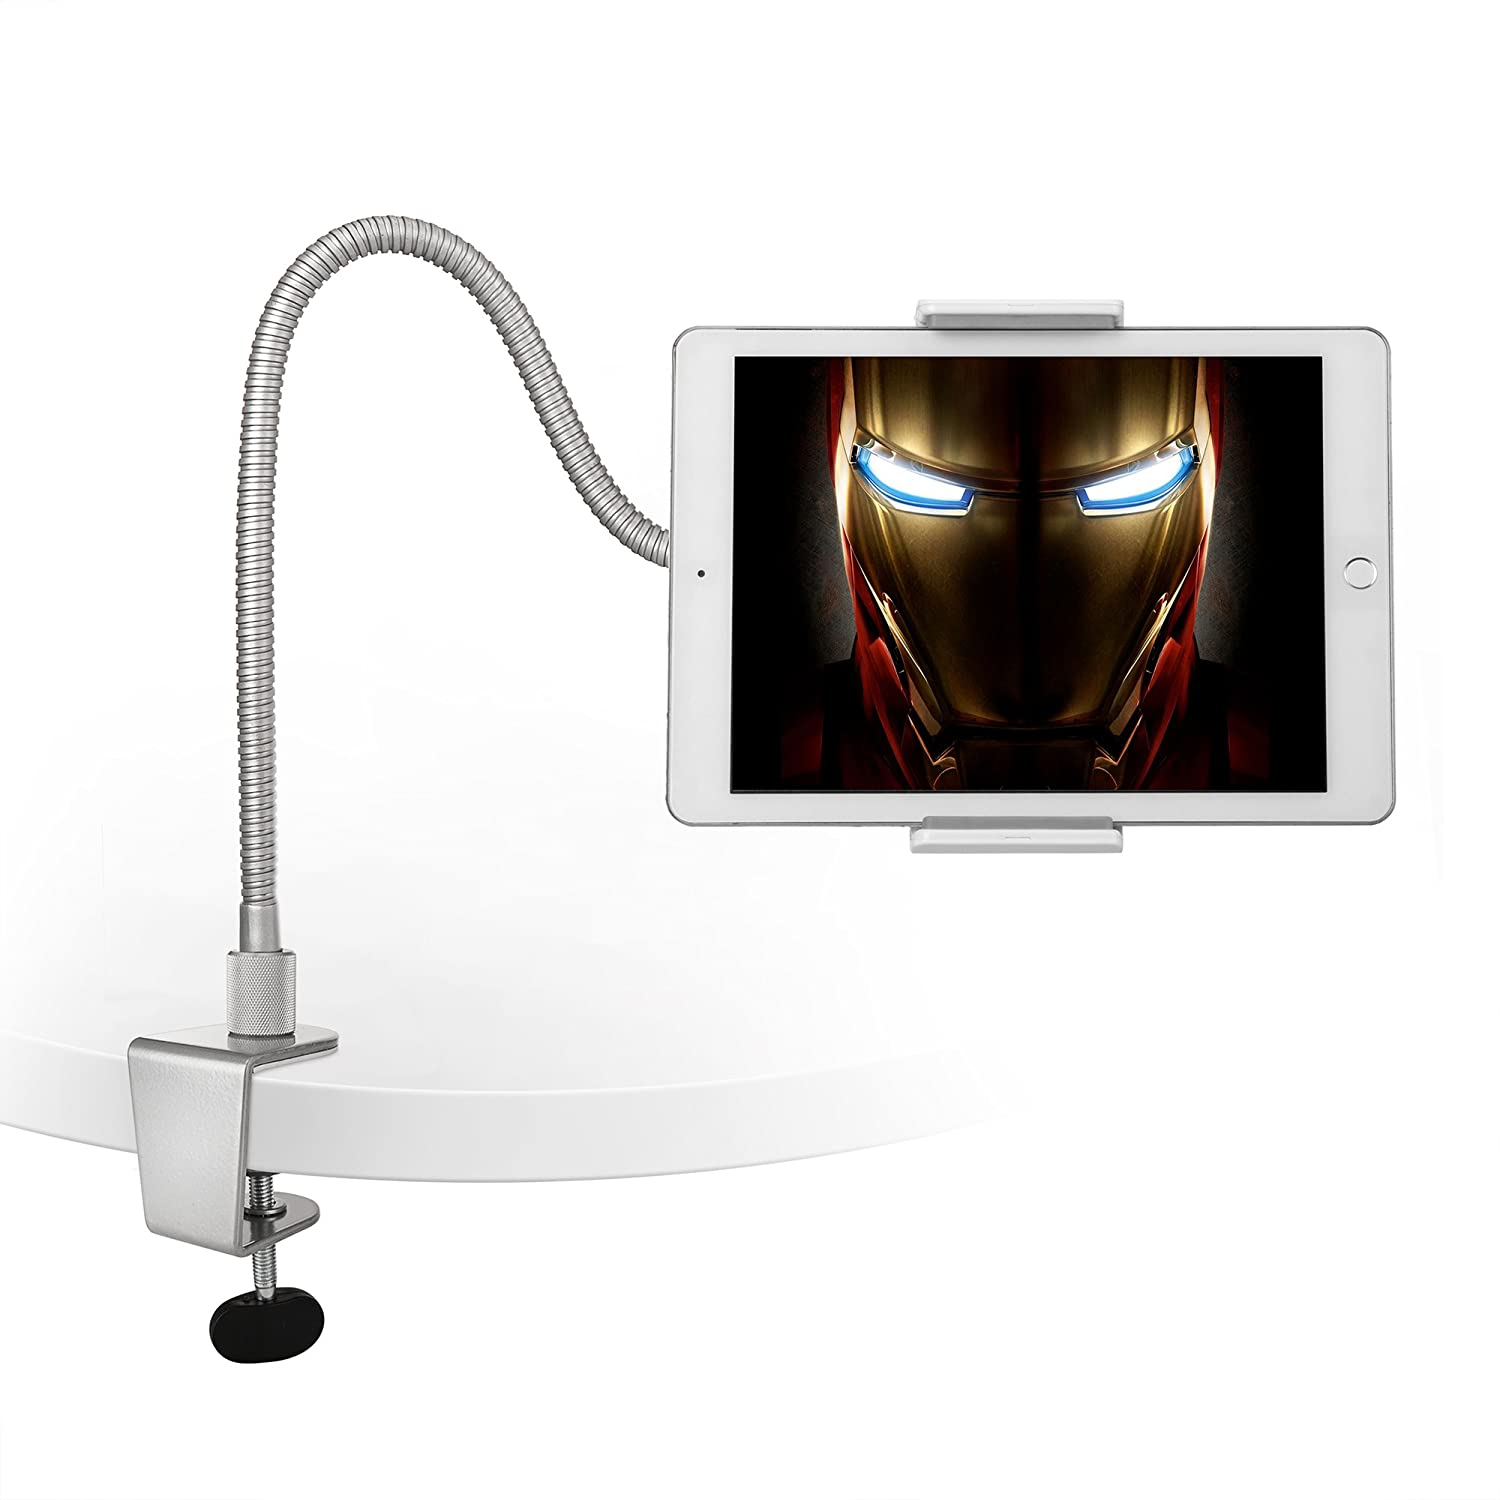 """AboveTEK Heavy Duty Aluminum Gooseneck iPad Holder, Cell Phone Desk Mount Tablet Holder iPad Stand for Office Kitchen Bed, Fits 3.5""""-10"""" iPad Android Tablet & Mobile iPhone X 8 7, Strong Flexible Arm"""